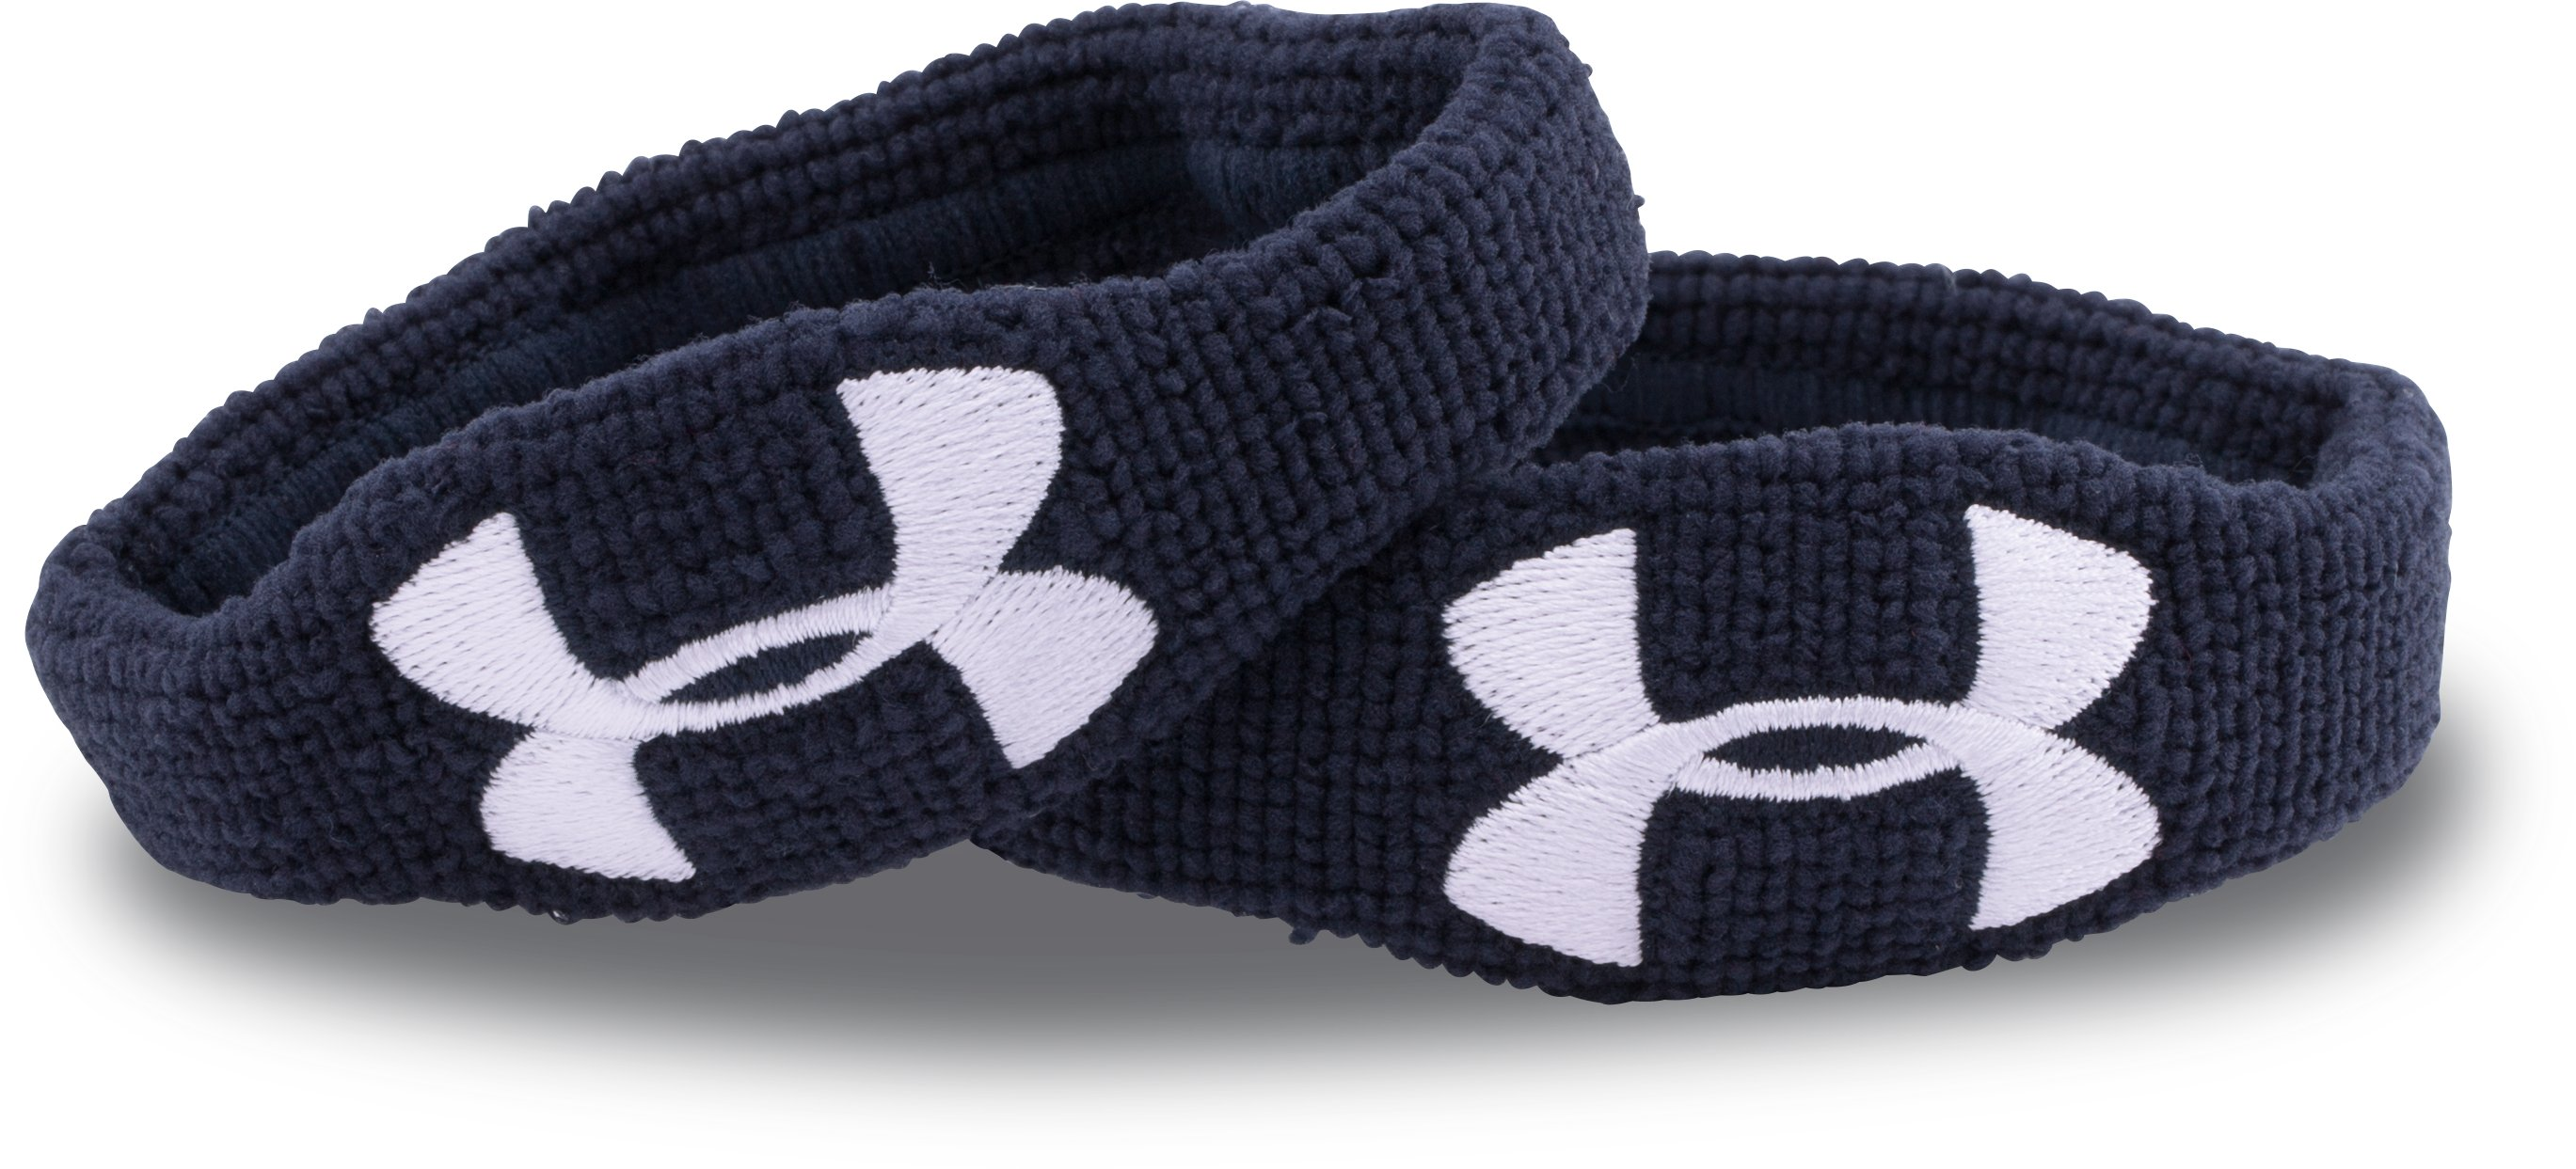 "UA 1/2"" Performance Wristband – 2-Pack, Midnight Navy"